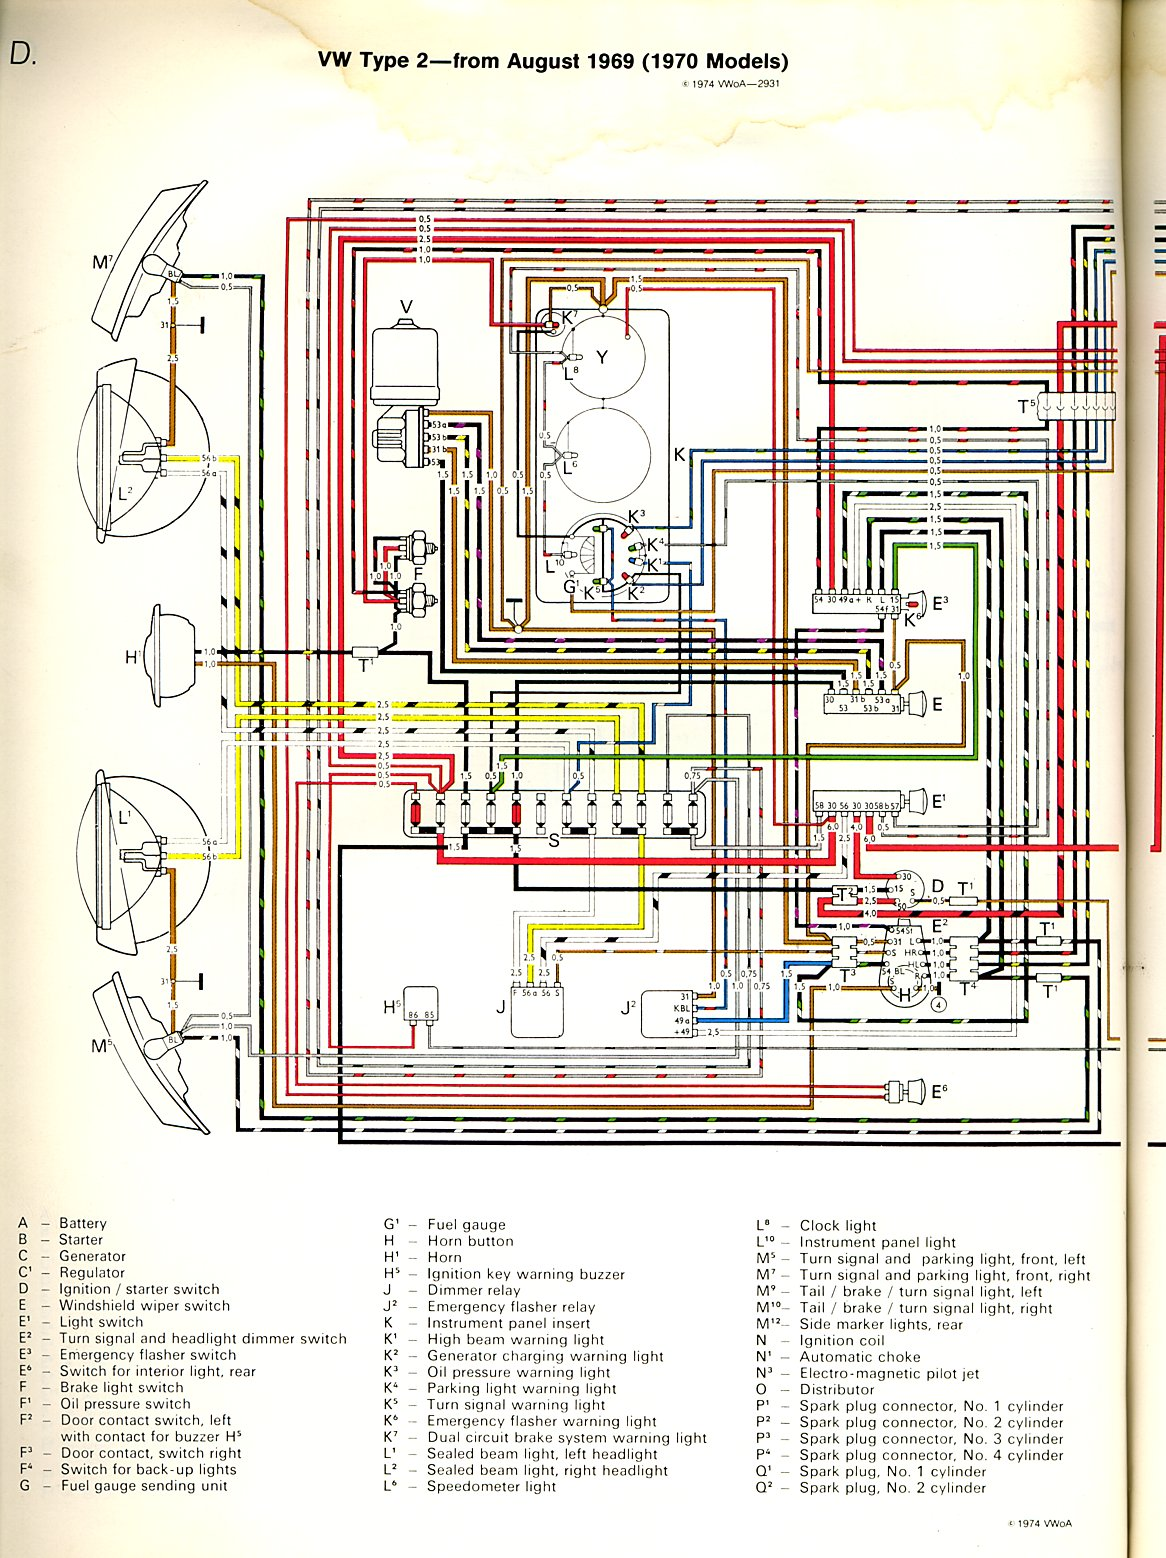 1969 mgb fuse box diagram best wiring library MGB Transmission Diagram 1969 mgb fuse box diagram